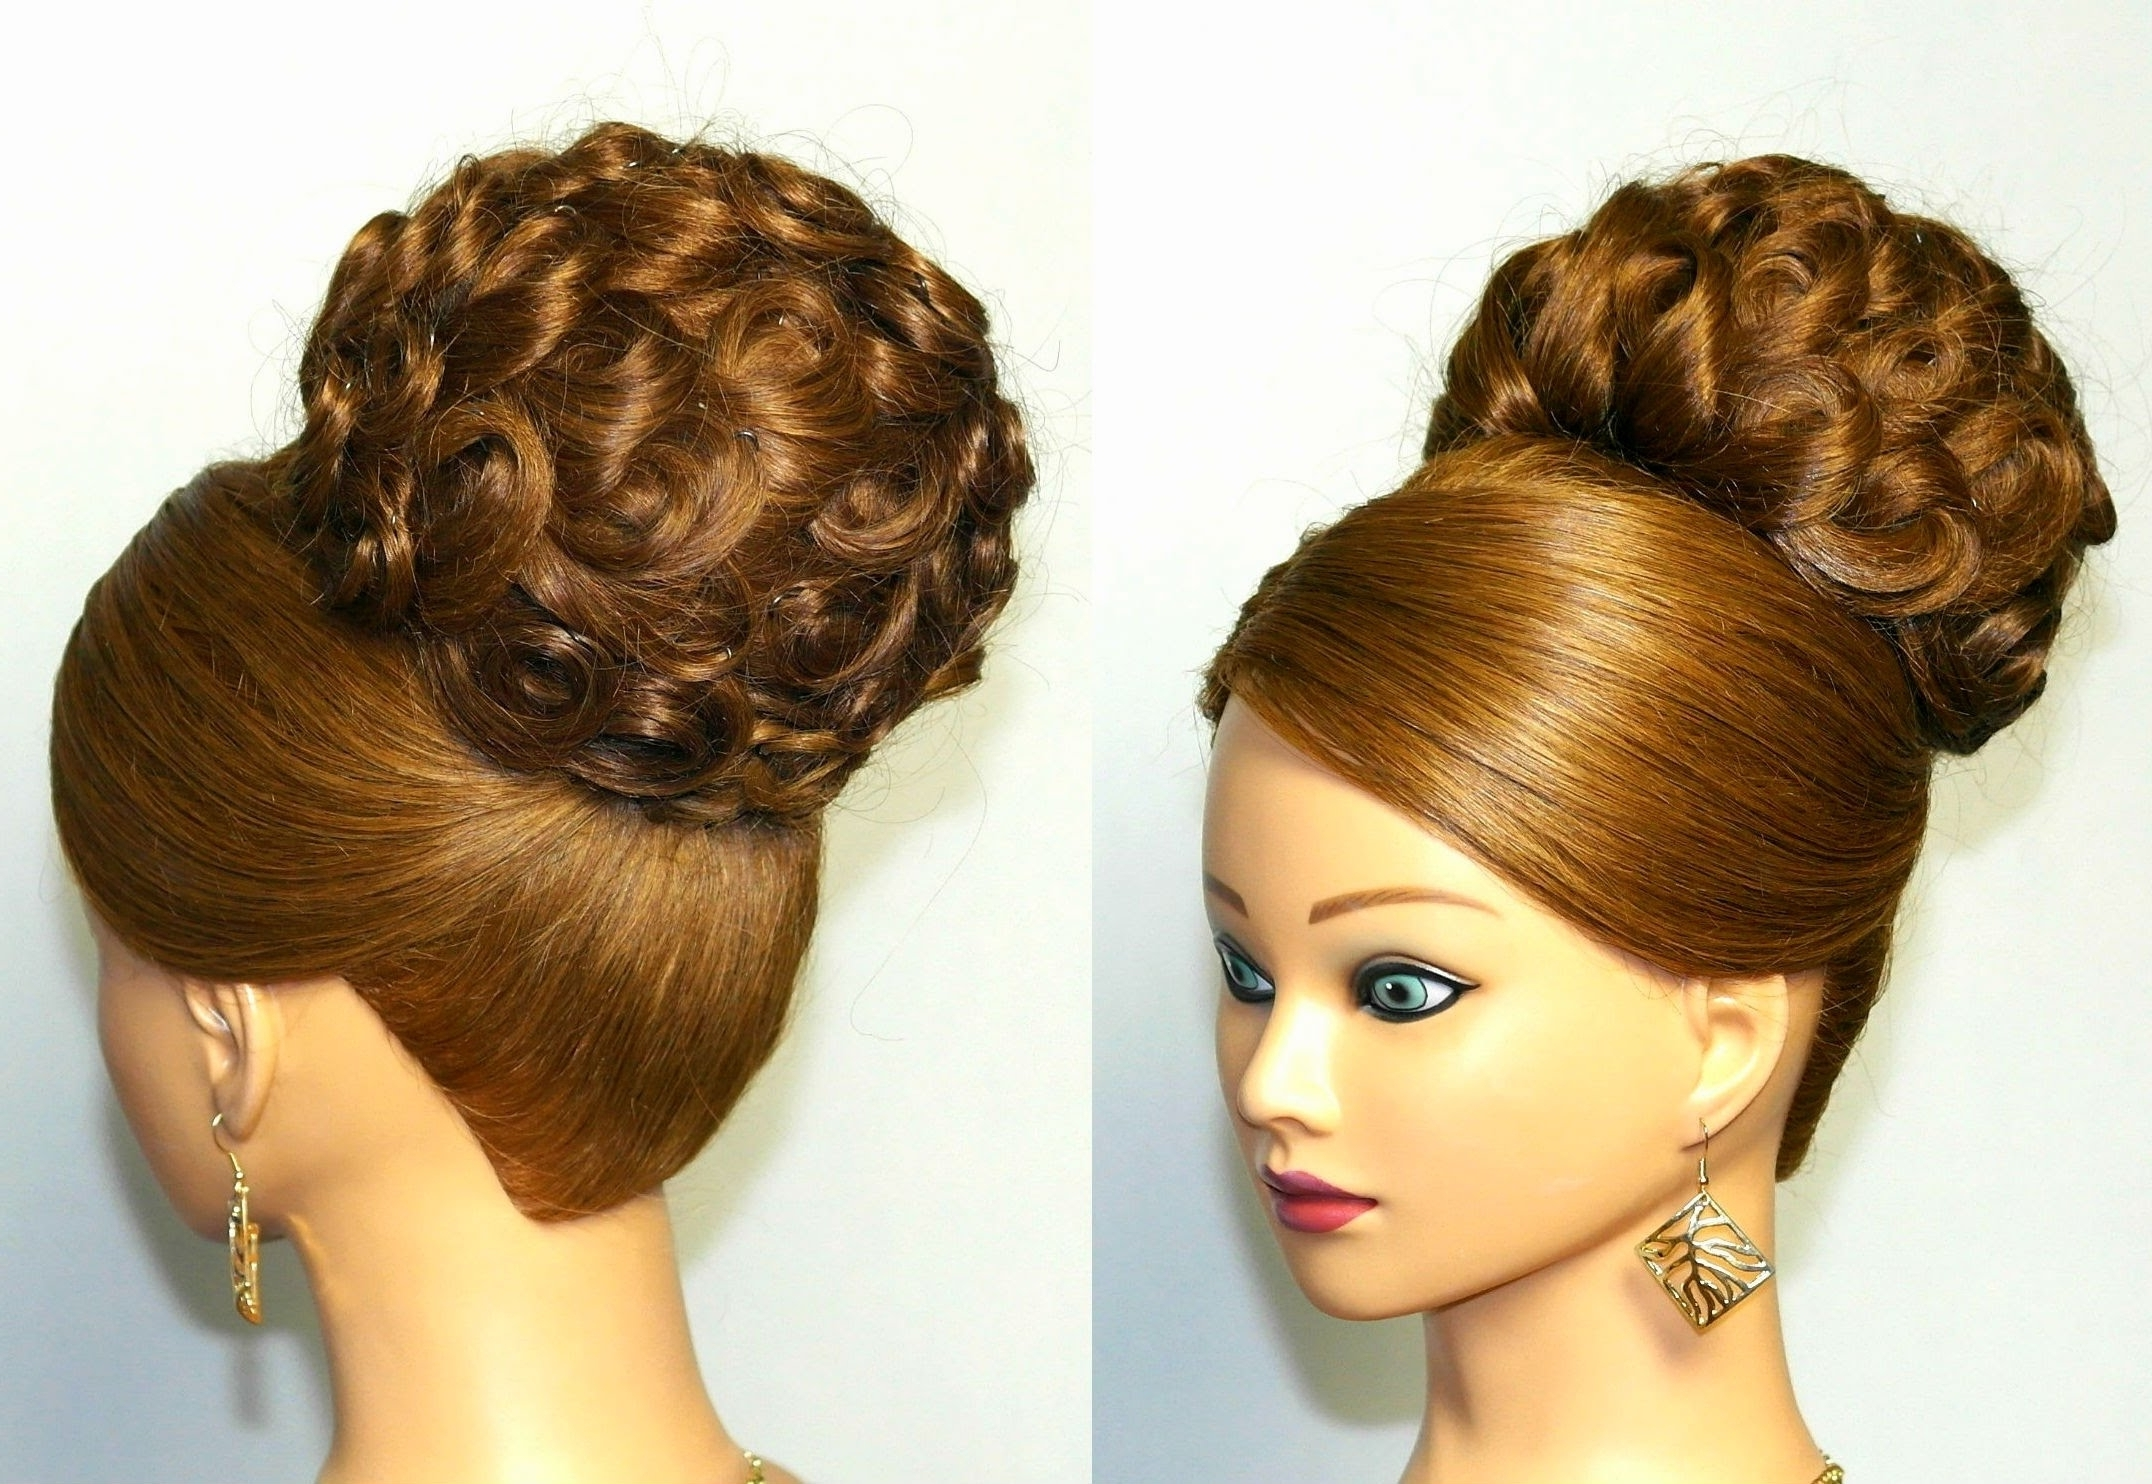 Fancy Updo Hairstyles For Long Hair – Women Medium Haircut Intended For Fancy Updo Hairstyles For Medium Hair (View 9 of 15)